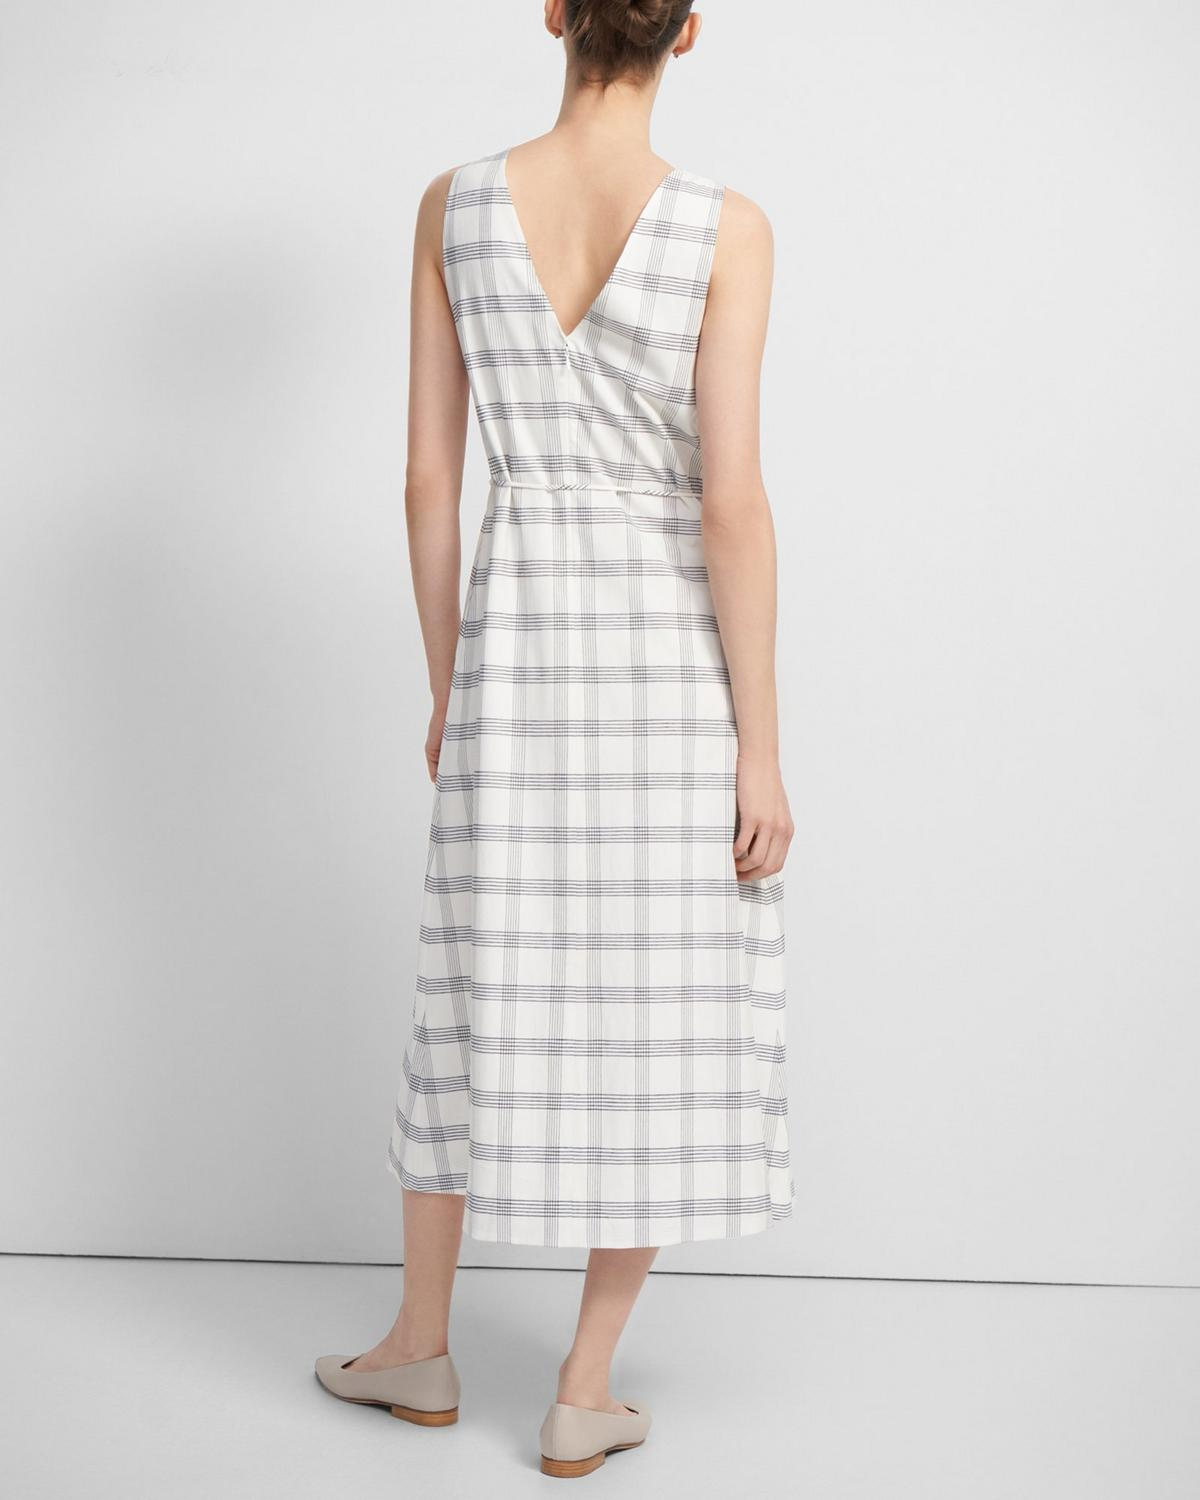 Deep V Midi Dress in Spring Plaid